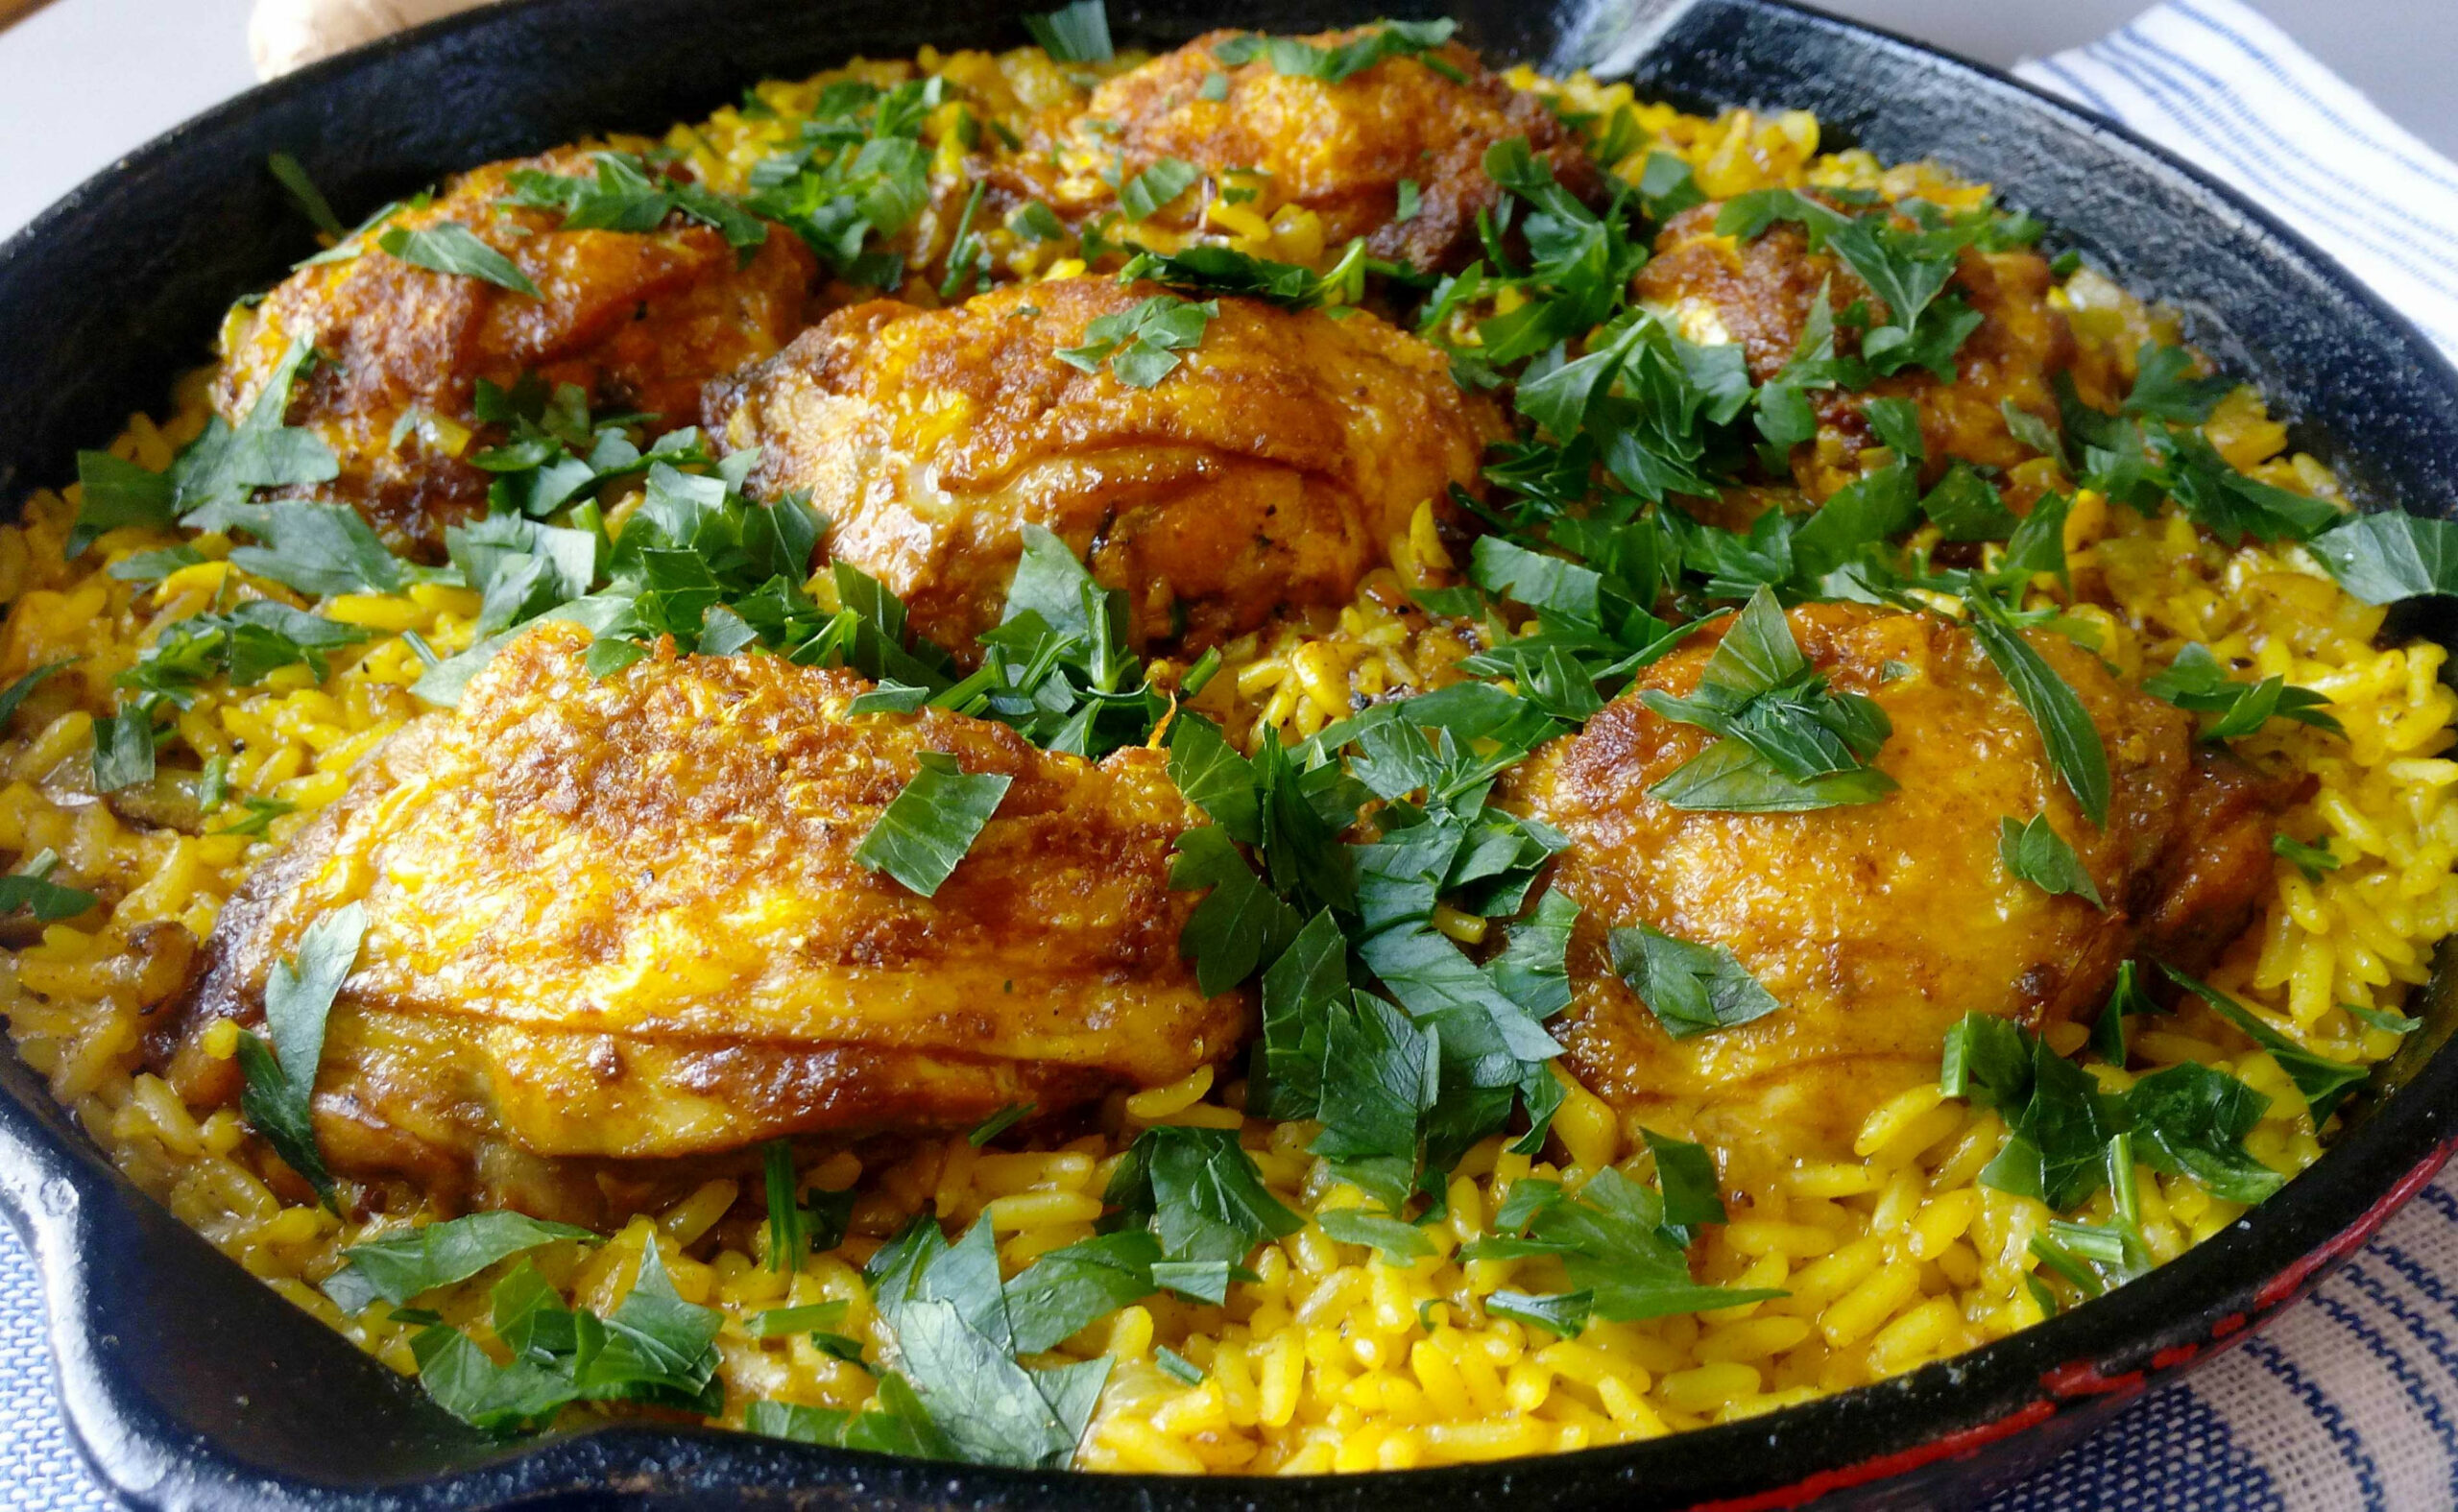 One Skillet Ginger & Turmeric Chicken Thighs With Rice - recipes made with chicken thighs